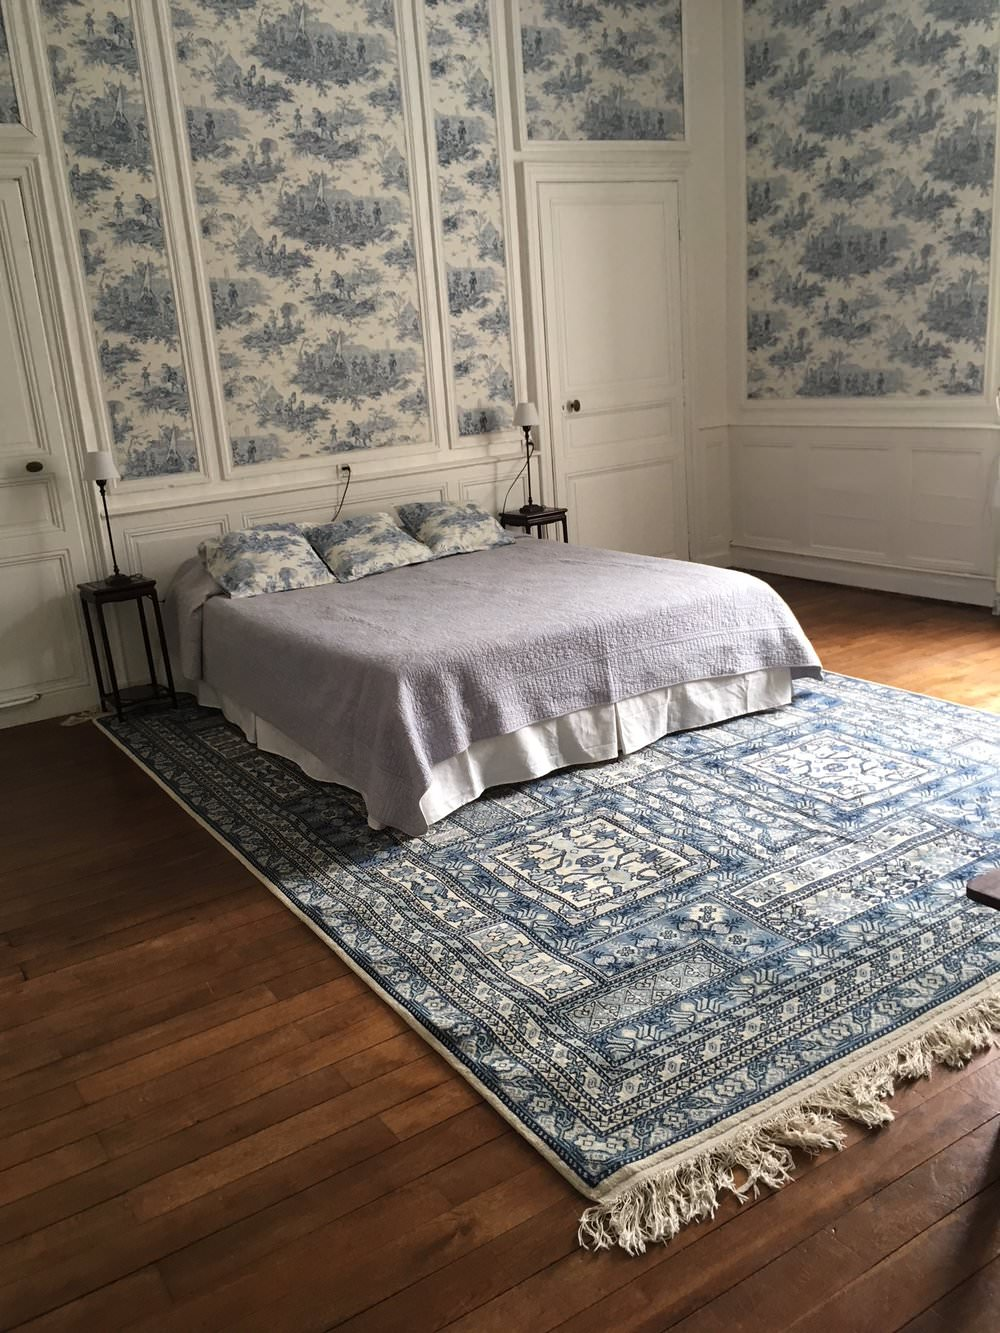 France-CdP-Blue Bedroom.jpg